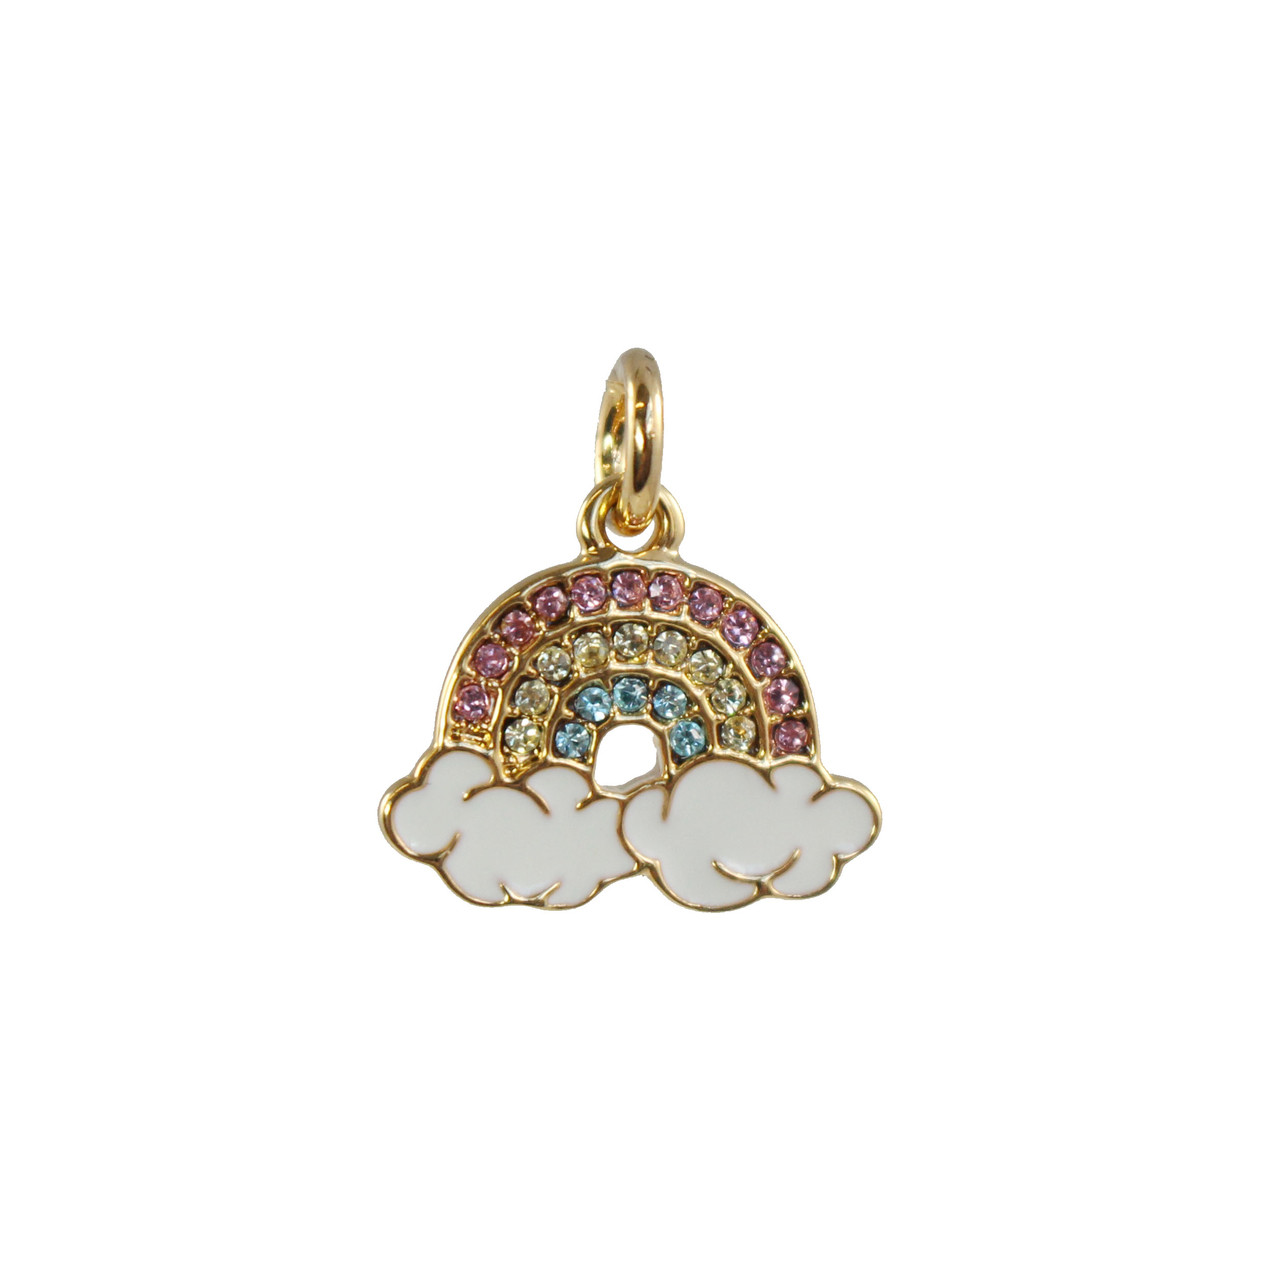 a2da28d938e4 Rainbow Charm Pendant - Gold   Pave Crystals - Packaged - Wildflower Co ...